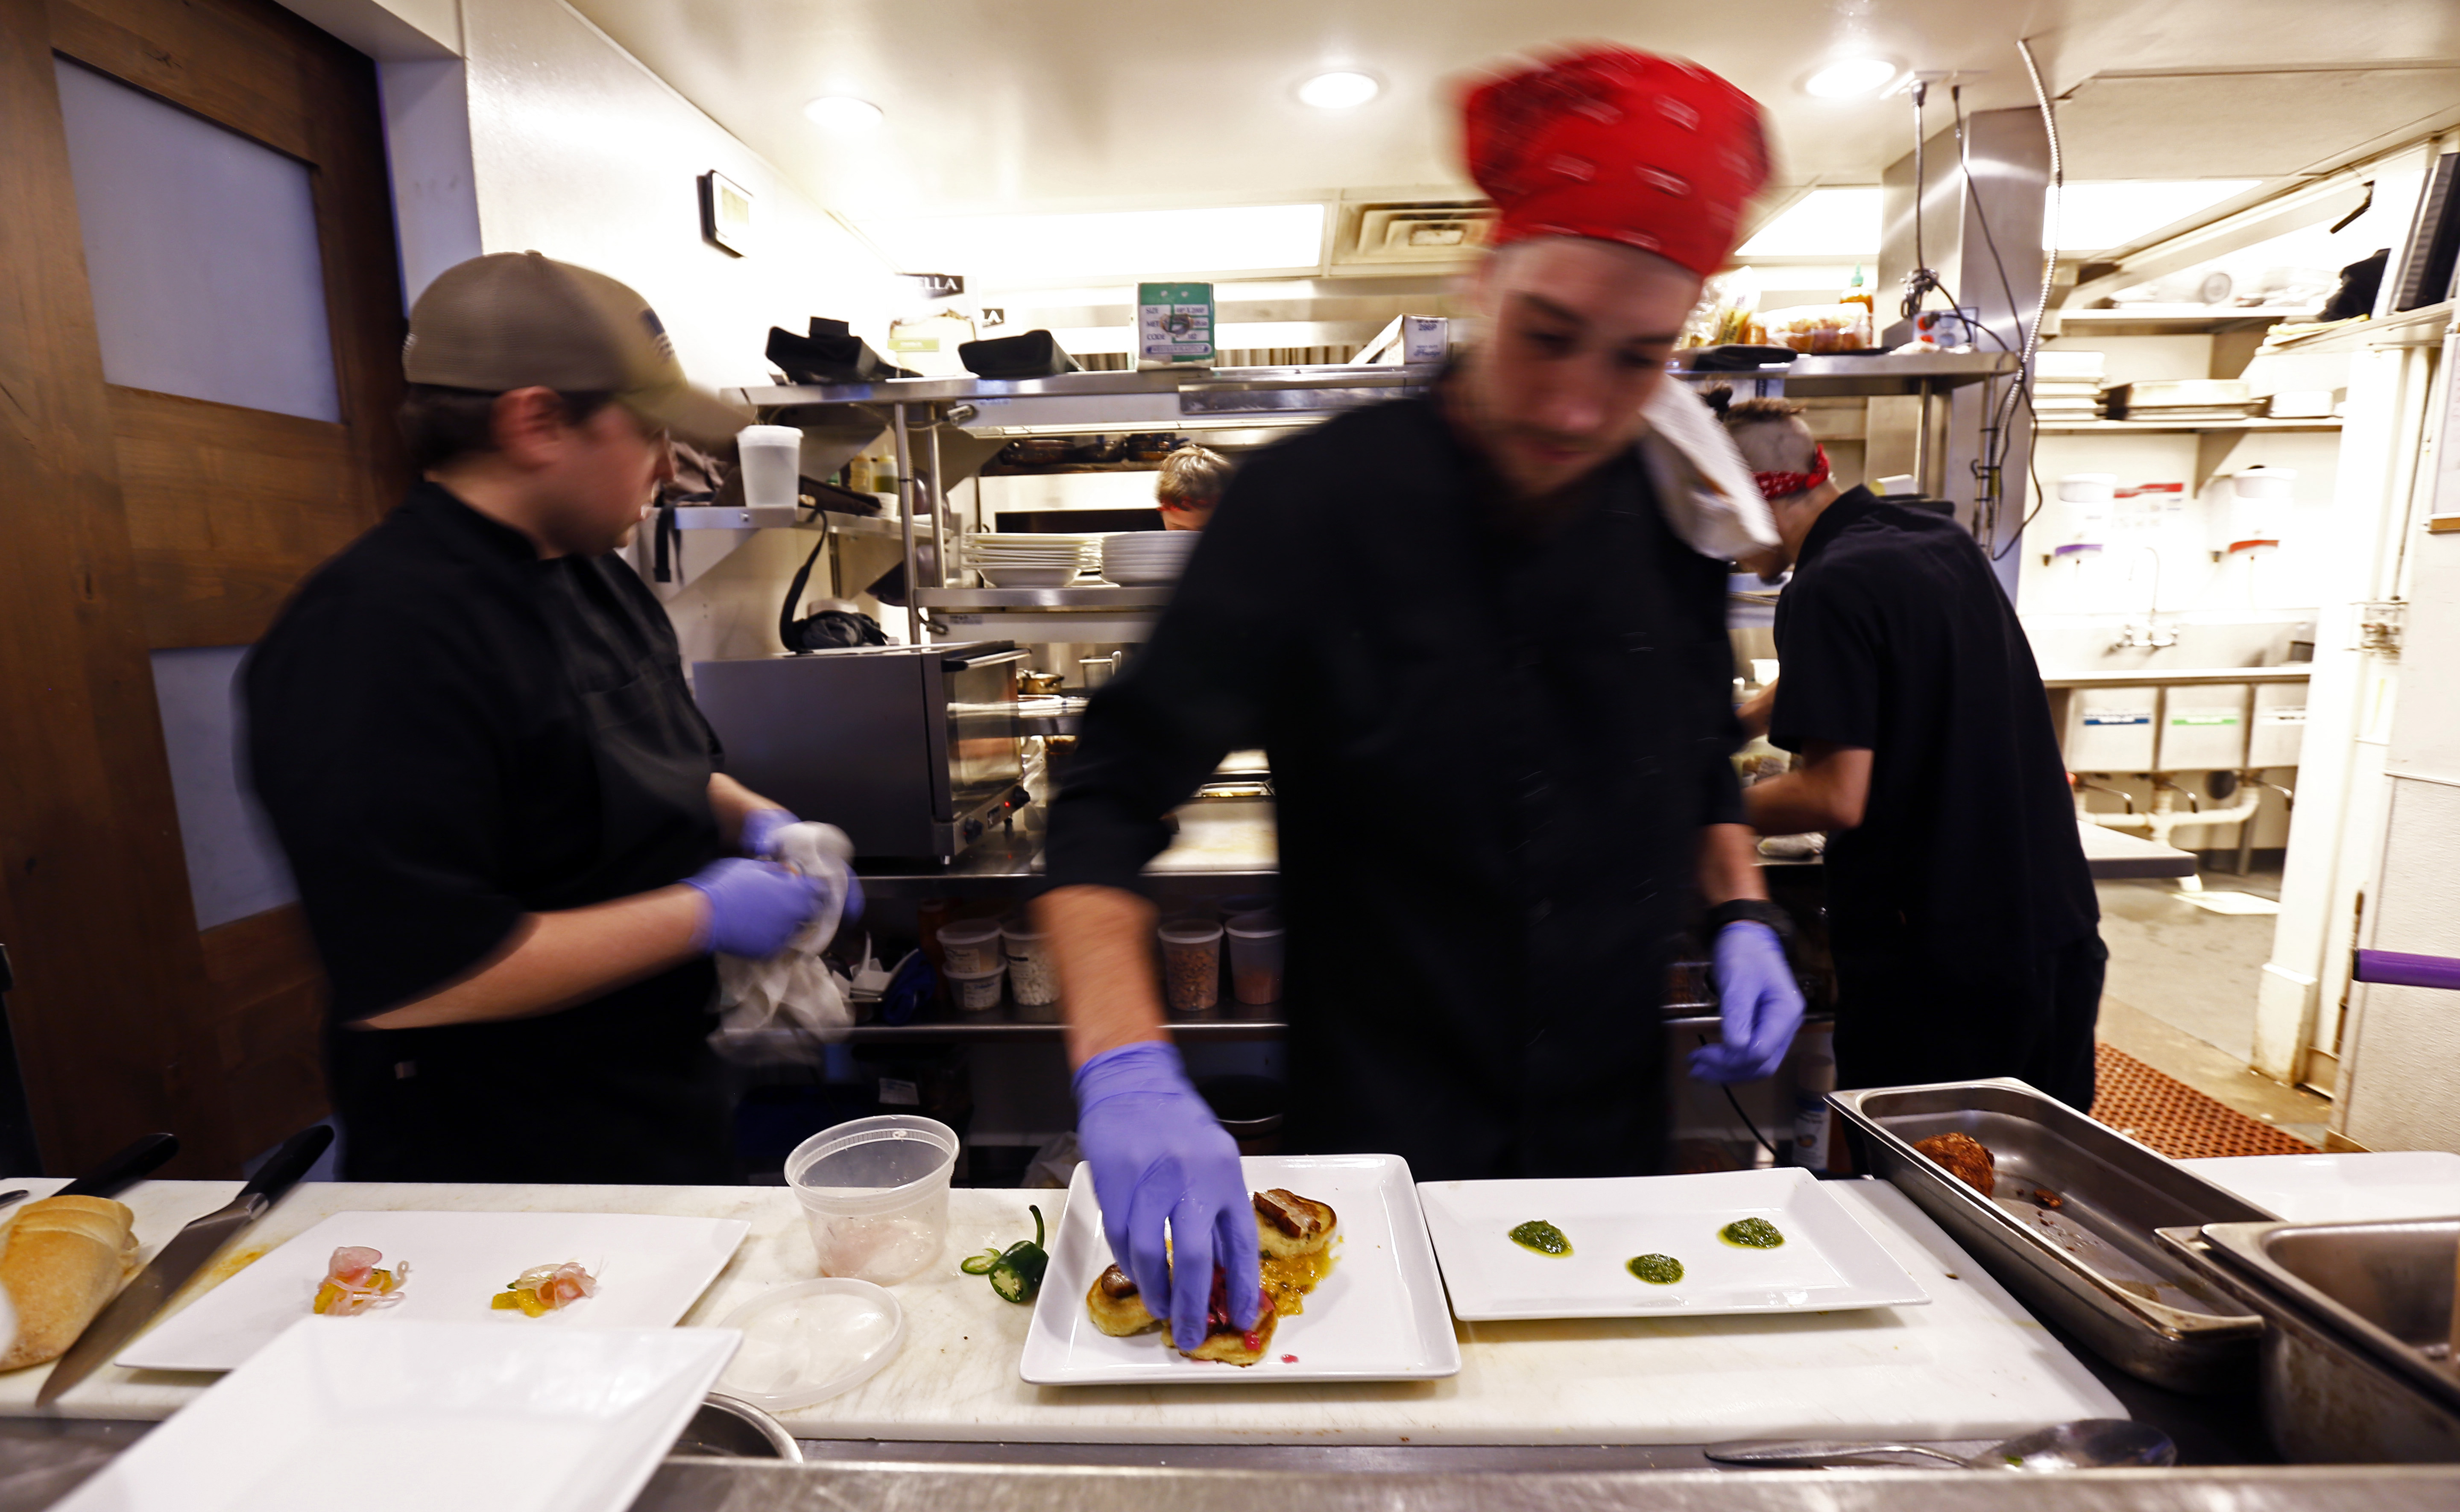 One of the chef's at The Dwell Hotel prepares a plate. MUST CREDIT: Photo by Wade Payne for The Washington Post.